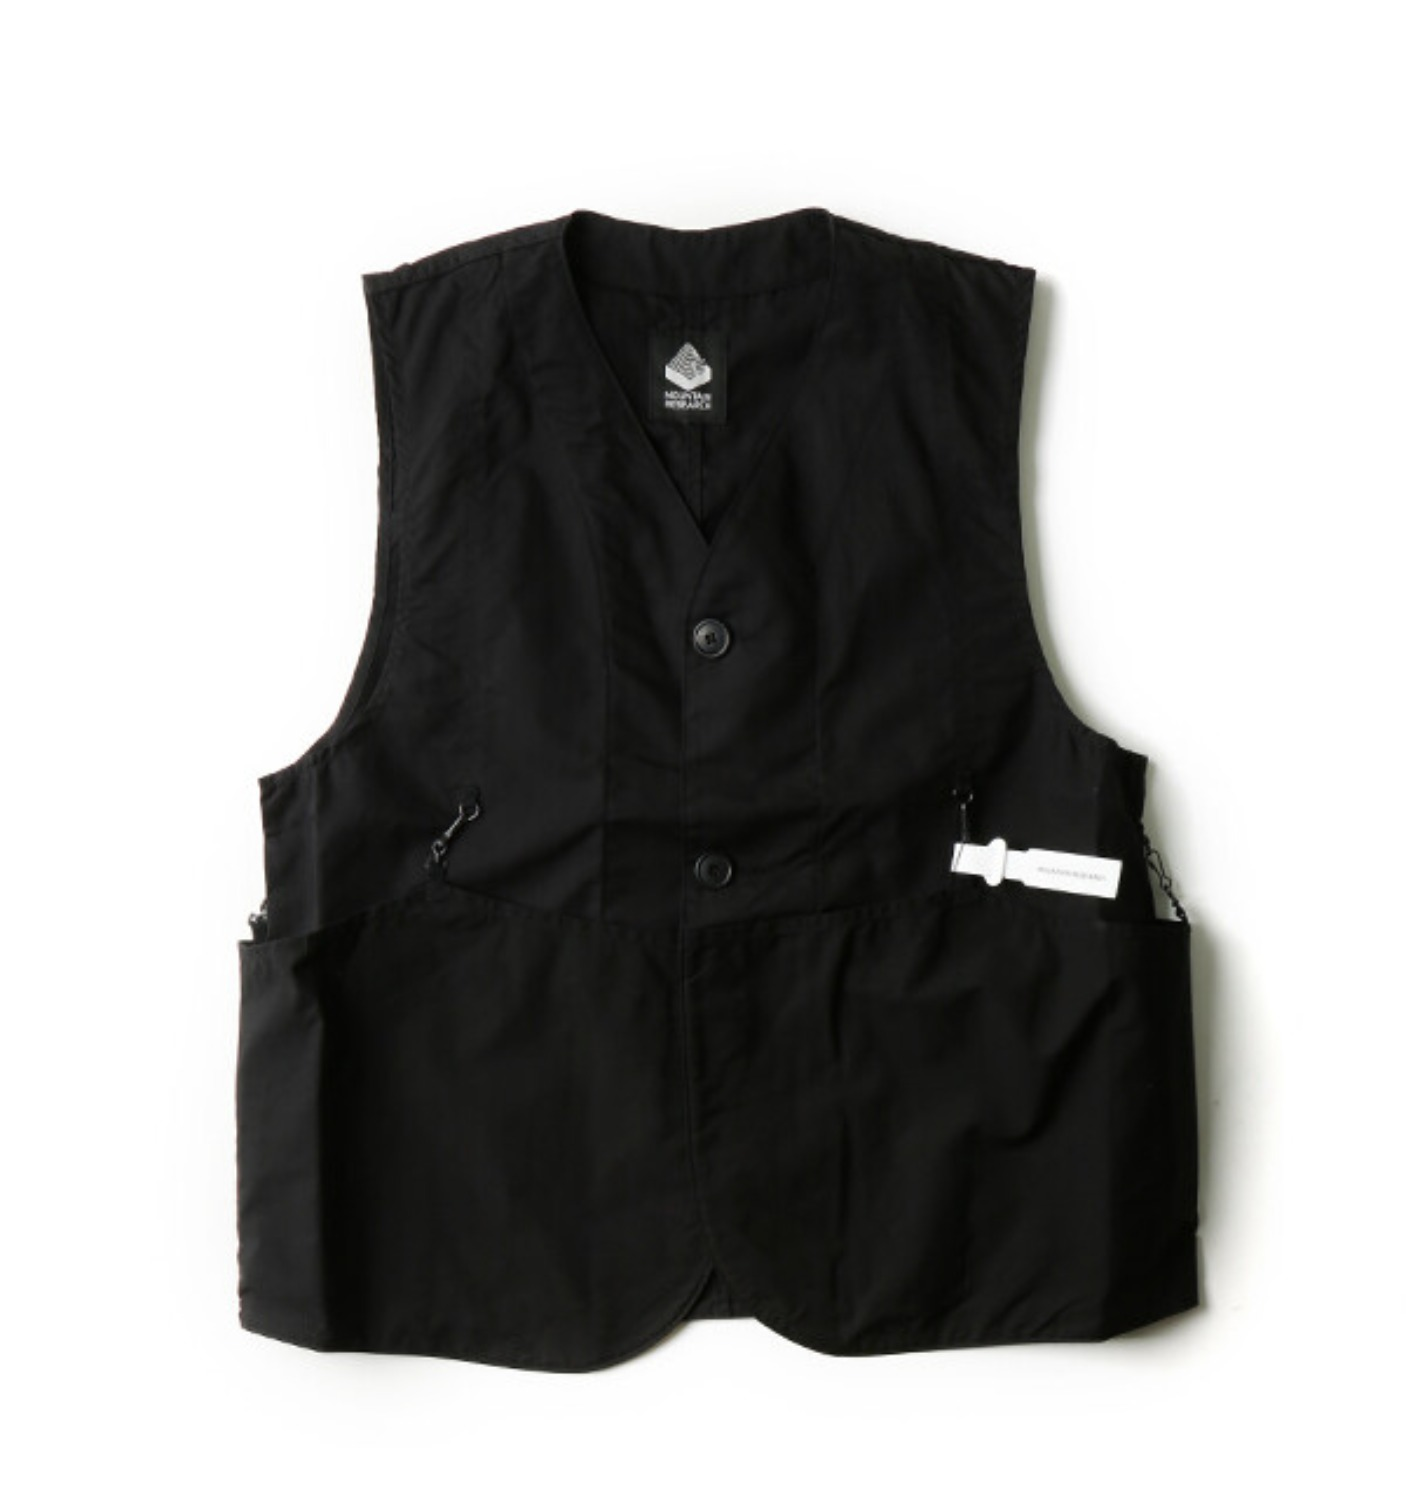 FLOWER CARRIER VEST BLACK(2575)